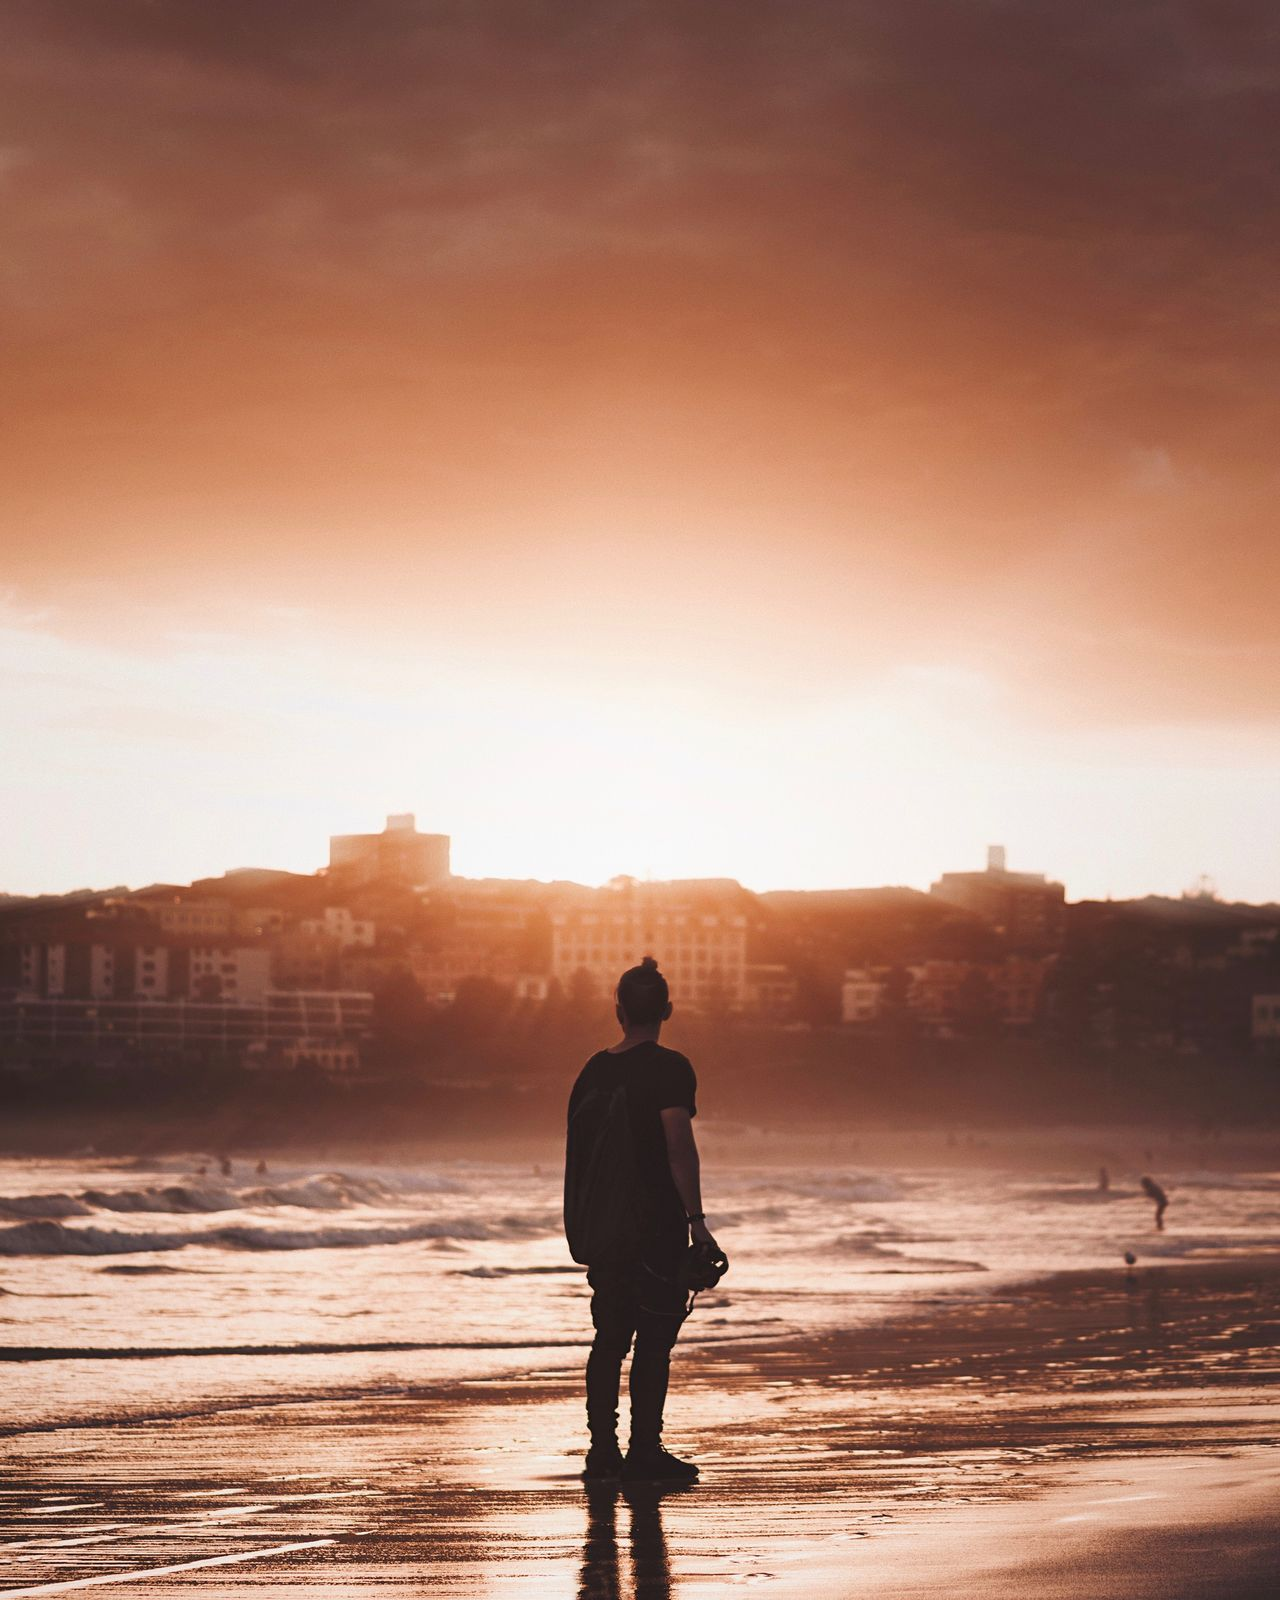 One Person Rear View Sky Sunset Real People Men Standing Built Structure Architecture Silhouette Building Exterior City Full Length One Man Only Outdoors Water Nature Day Only Men Adult Traveling Home For The Holidays